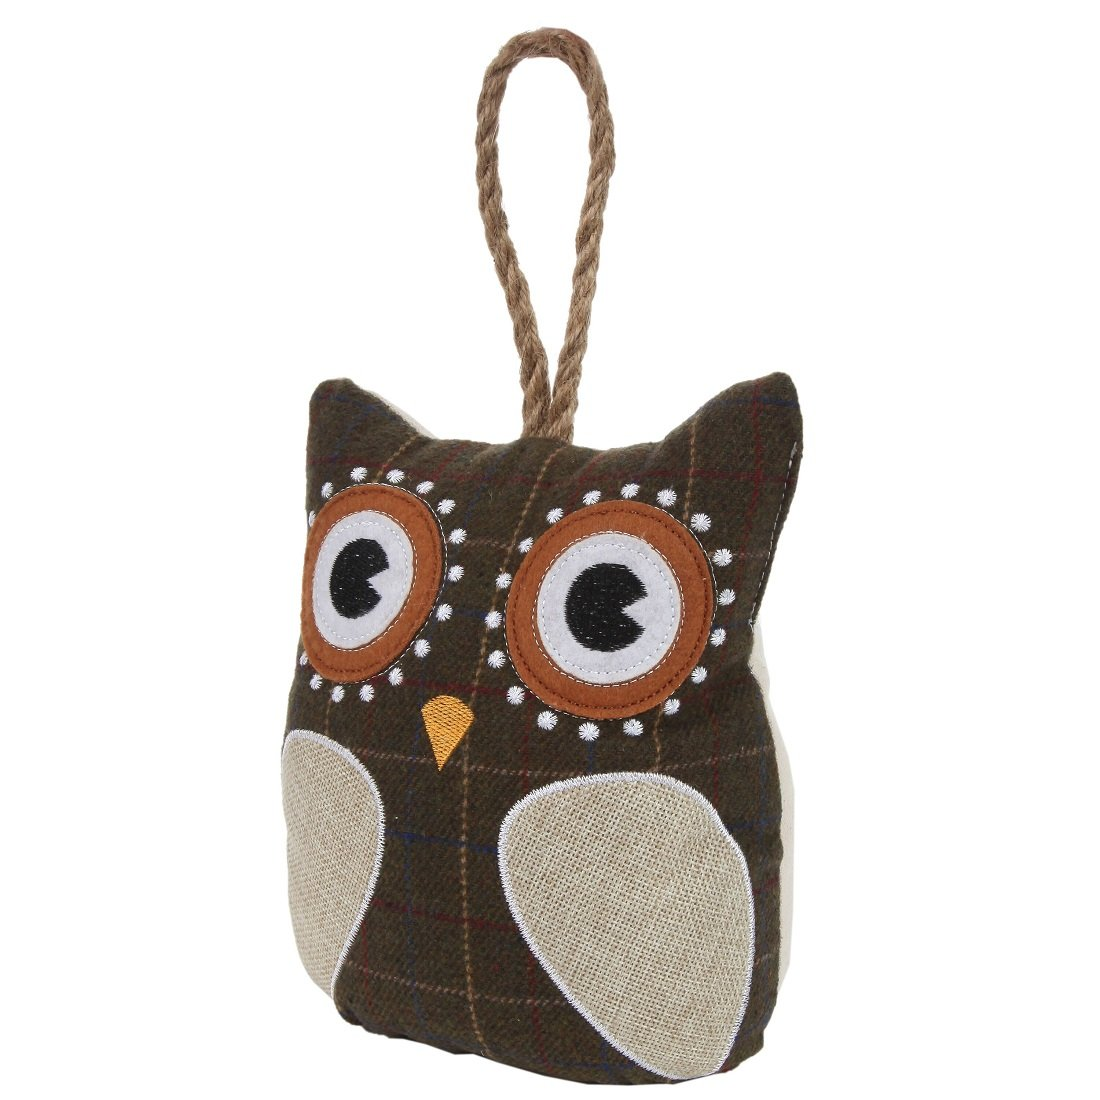 Lily's Home Cute Decorative Owl Weighted Interior Door Stopper, Compact with Patchwork Fabric Design and Hanging Loop Attached, Brown